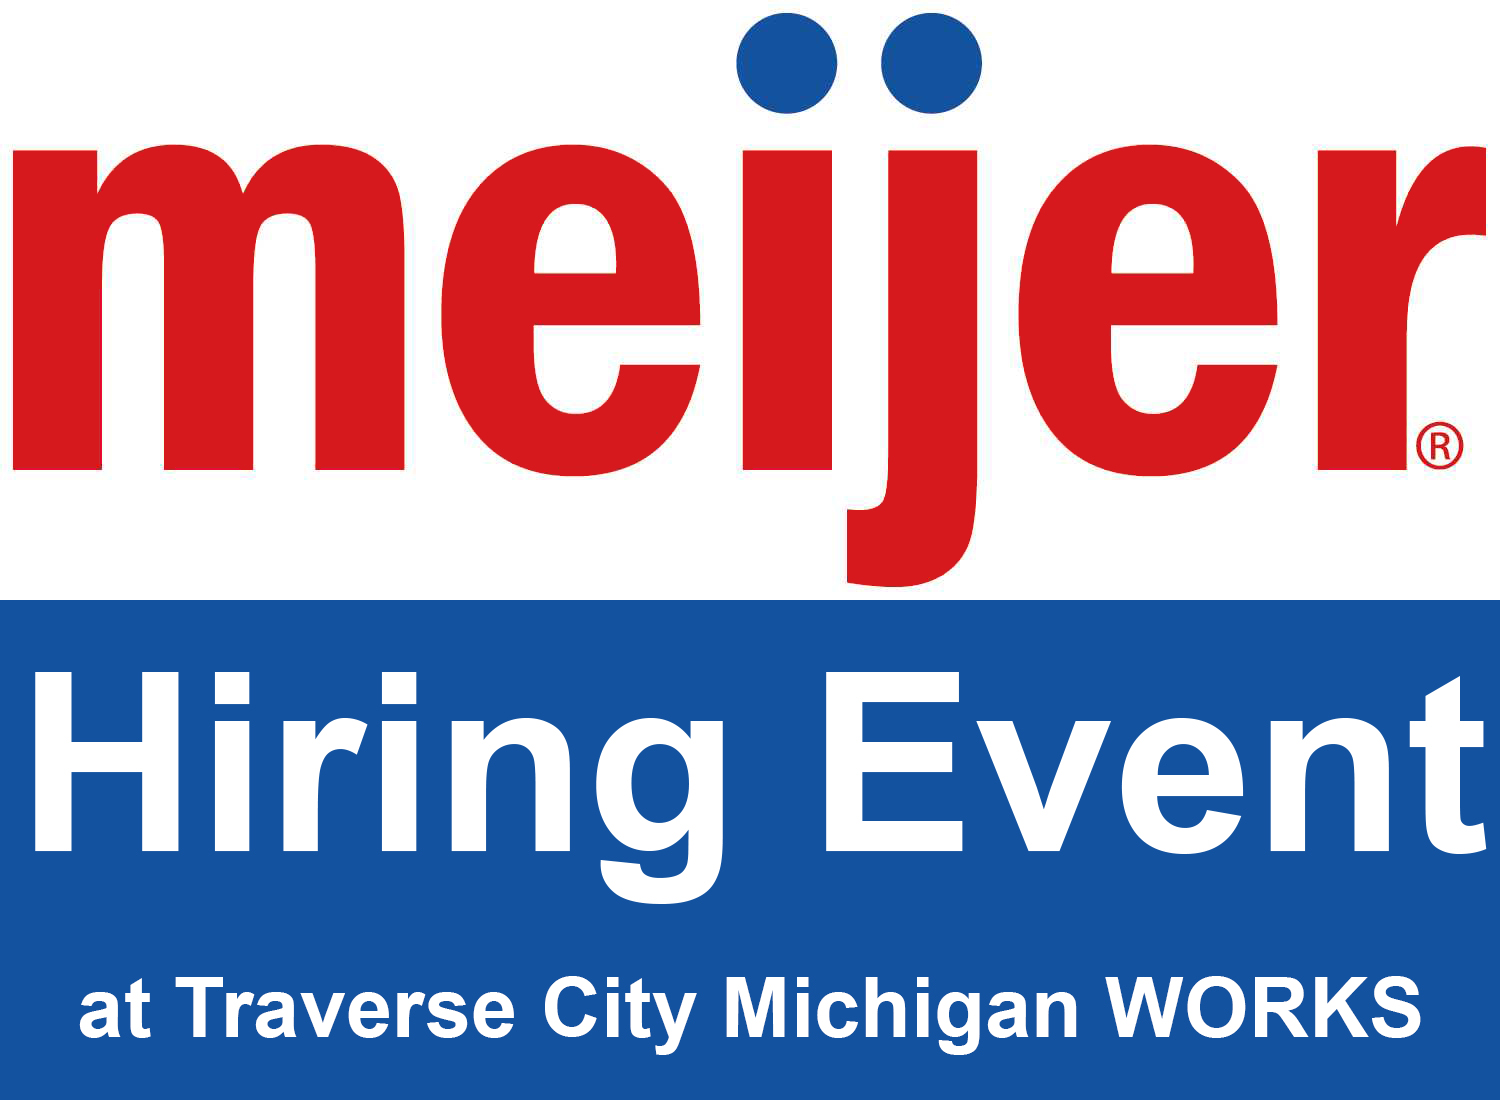 meijer hiring event at traverse city michigan works center